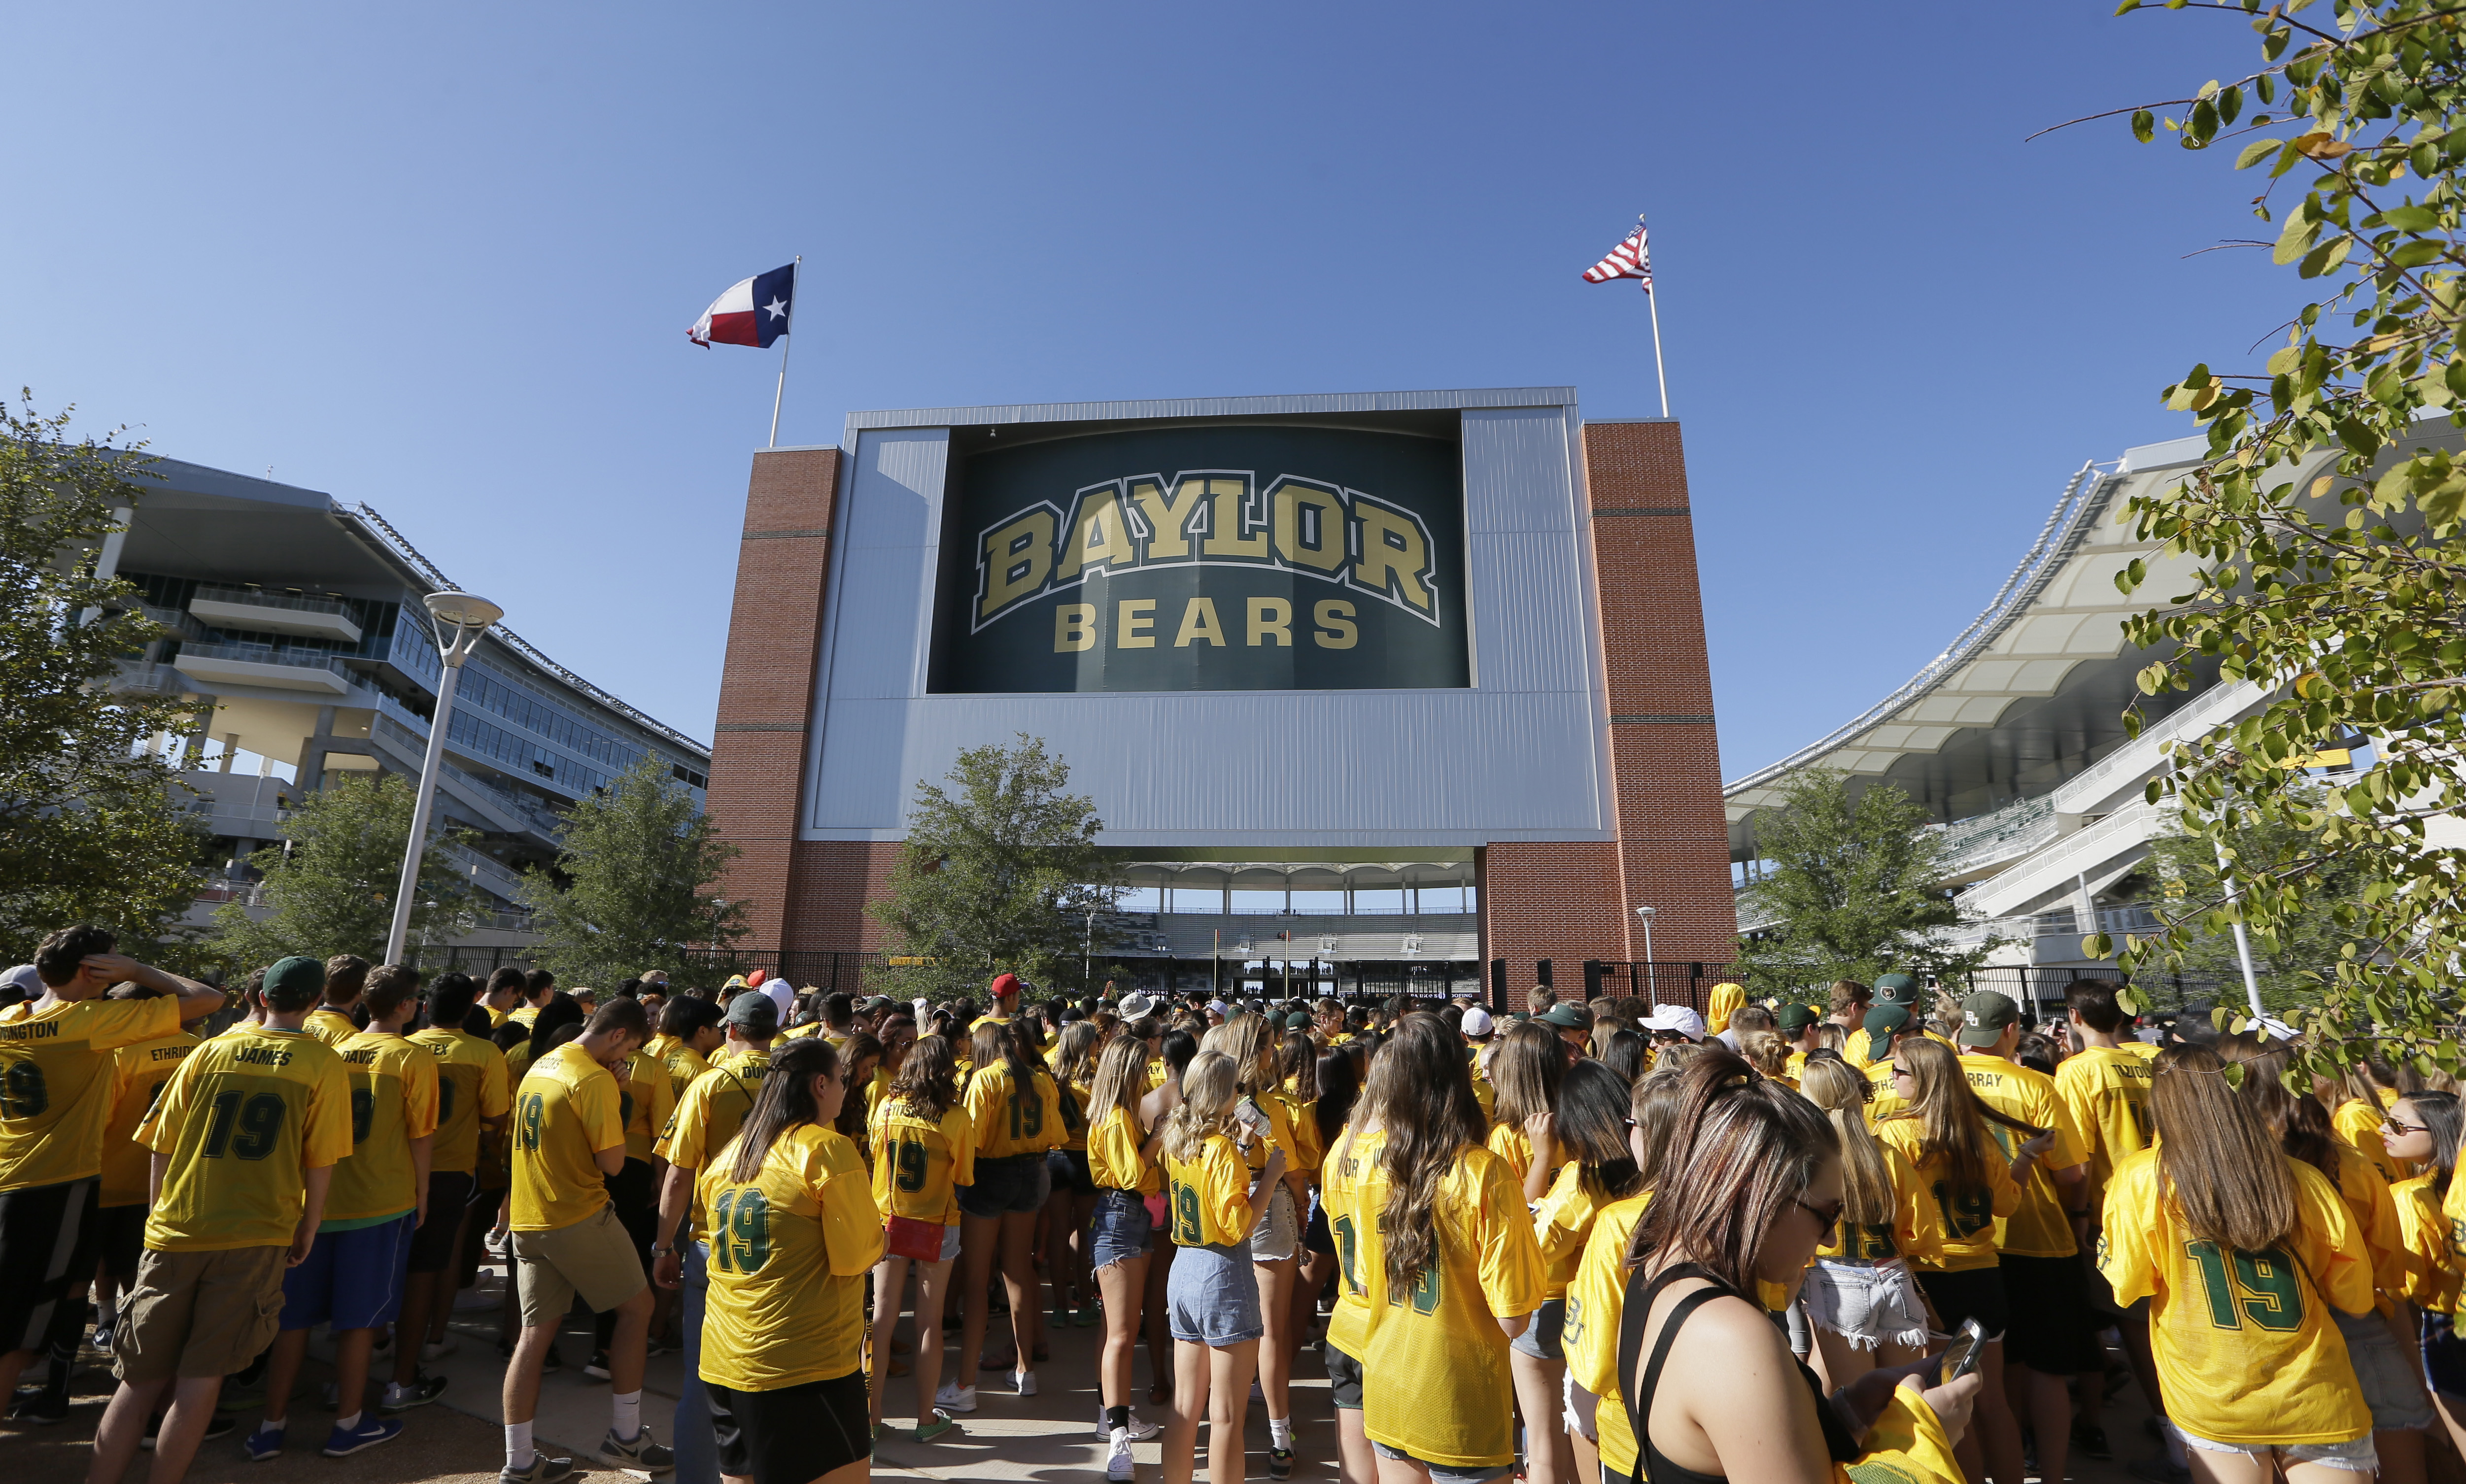 Fans wait to enter the stadium before an NCAA college football game between Lamar and Baylor, Saturday, Sept. 12, 2015, in Waco, Texas. (AP Photo/LM Otero)